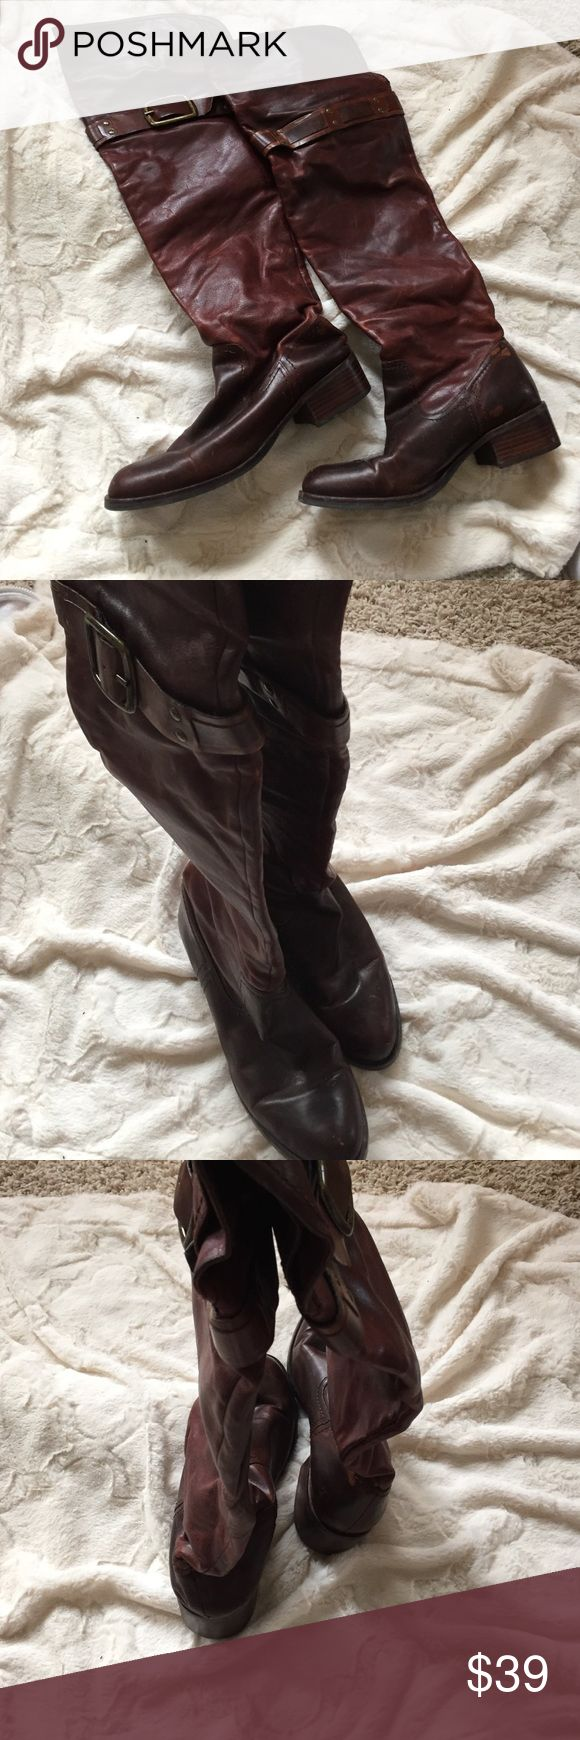 Jessica Simpson leather over the knee boots 8 B Jessica Simoson brown leather over the knee boots in size 8 B. Gently used condition Jessica Simpson Shoes Over the Knee Boots